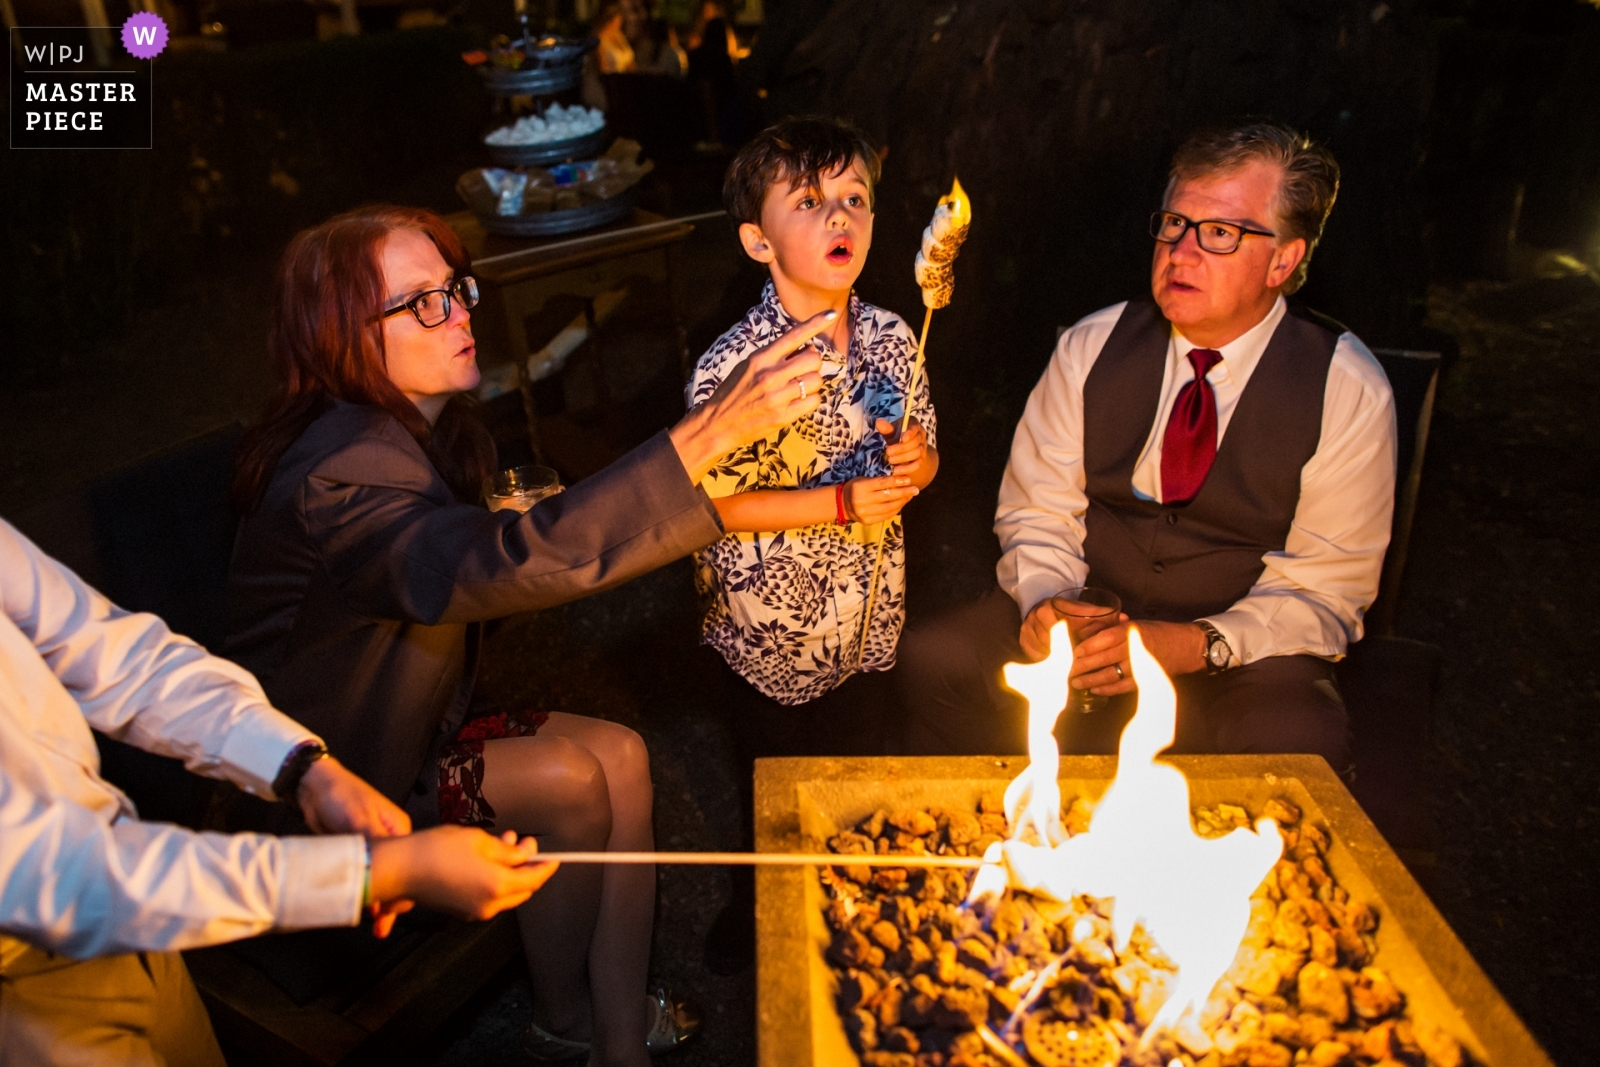 Grandma, the marshmallow is on fire! - San Francisco, California - Northern Wedding Photography -  | Deer Park Villa, Fairfax